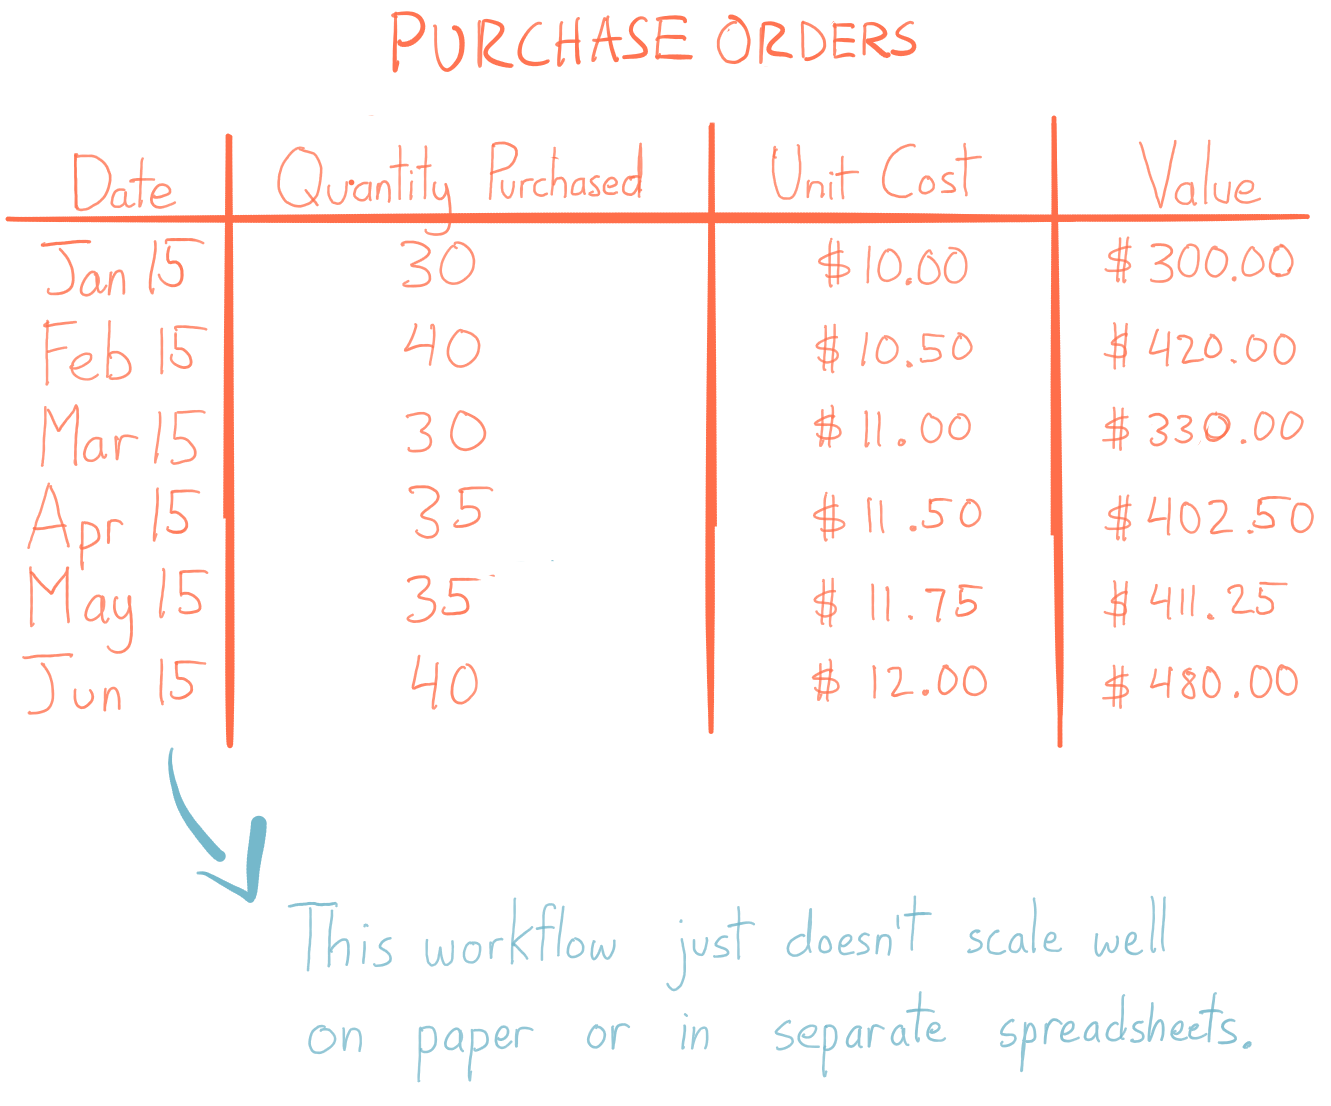 This table contains six purchase orders and demonstrates how tracking cost in separate tables does not scale well as a workflow, since the table could grow very large very quickly.